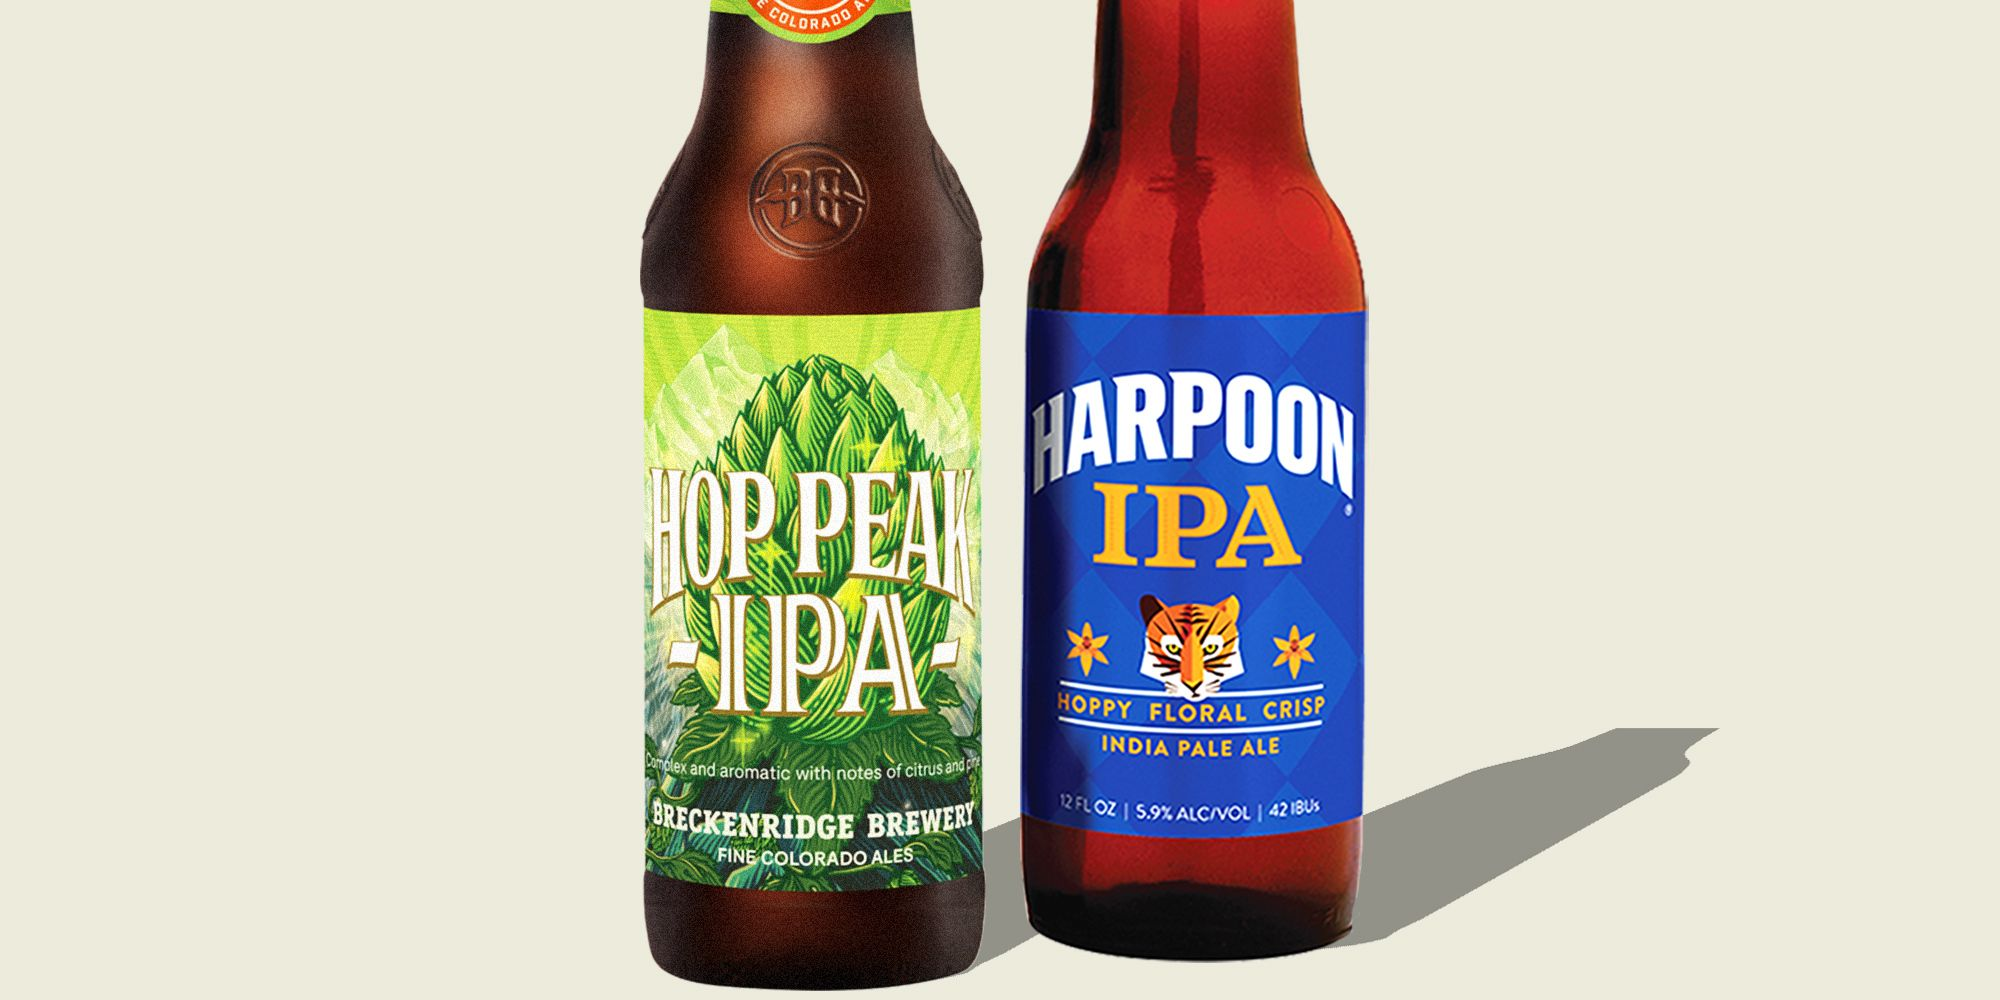 The 10 Best IPAs to Drink, As Recommended by Beer Experts